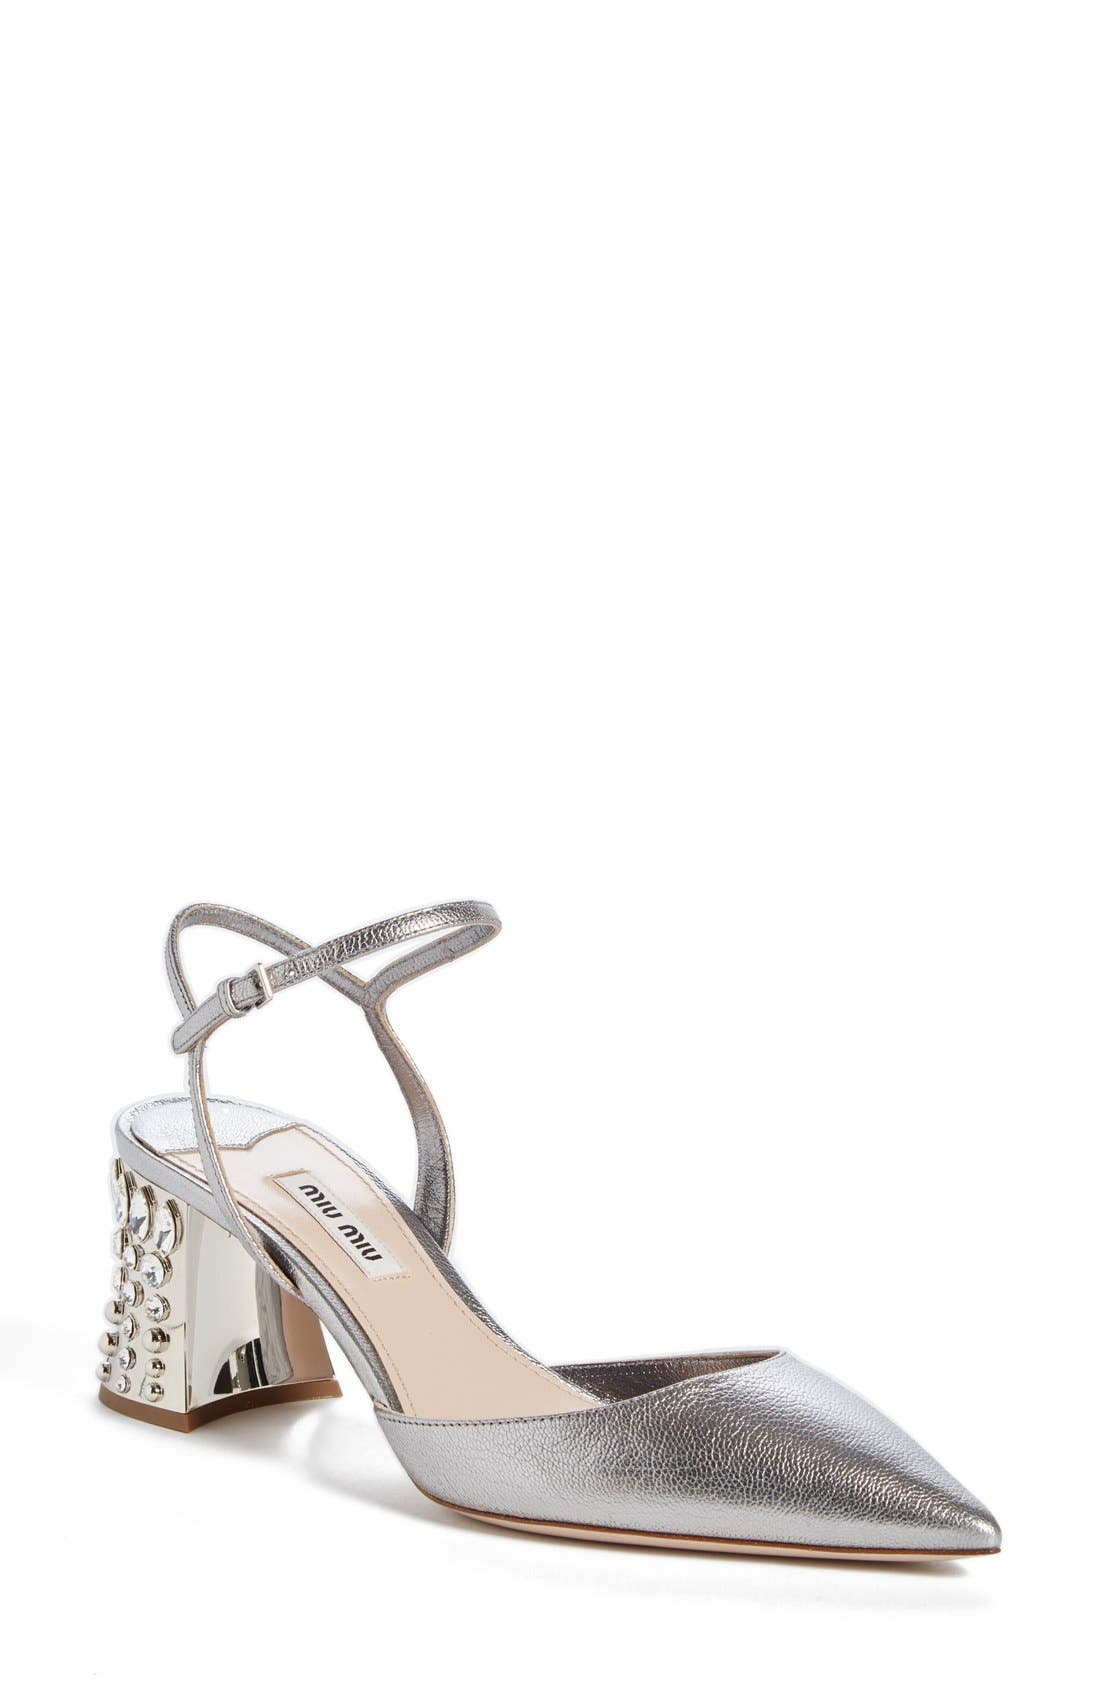 MIU MIU Jeweled Heel Ankle Strap Pump